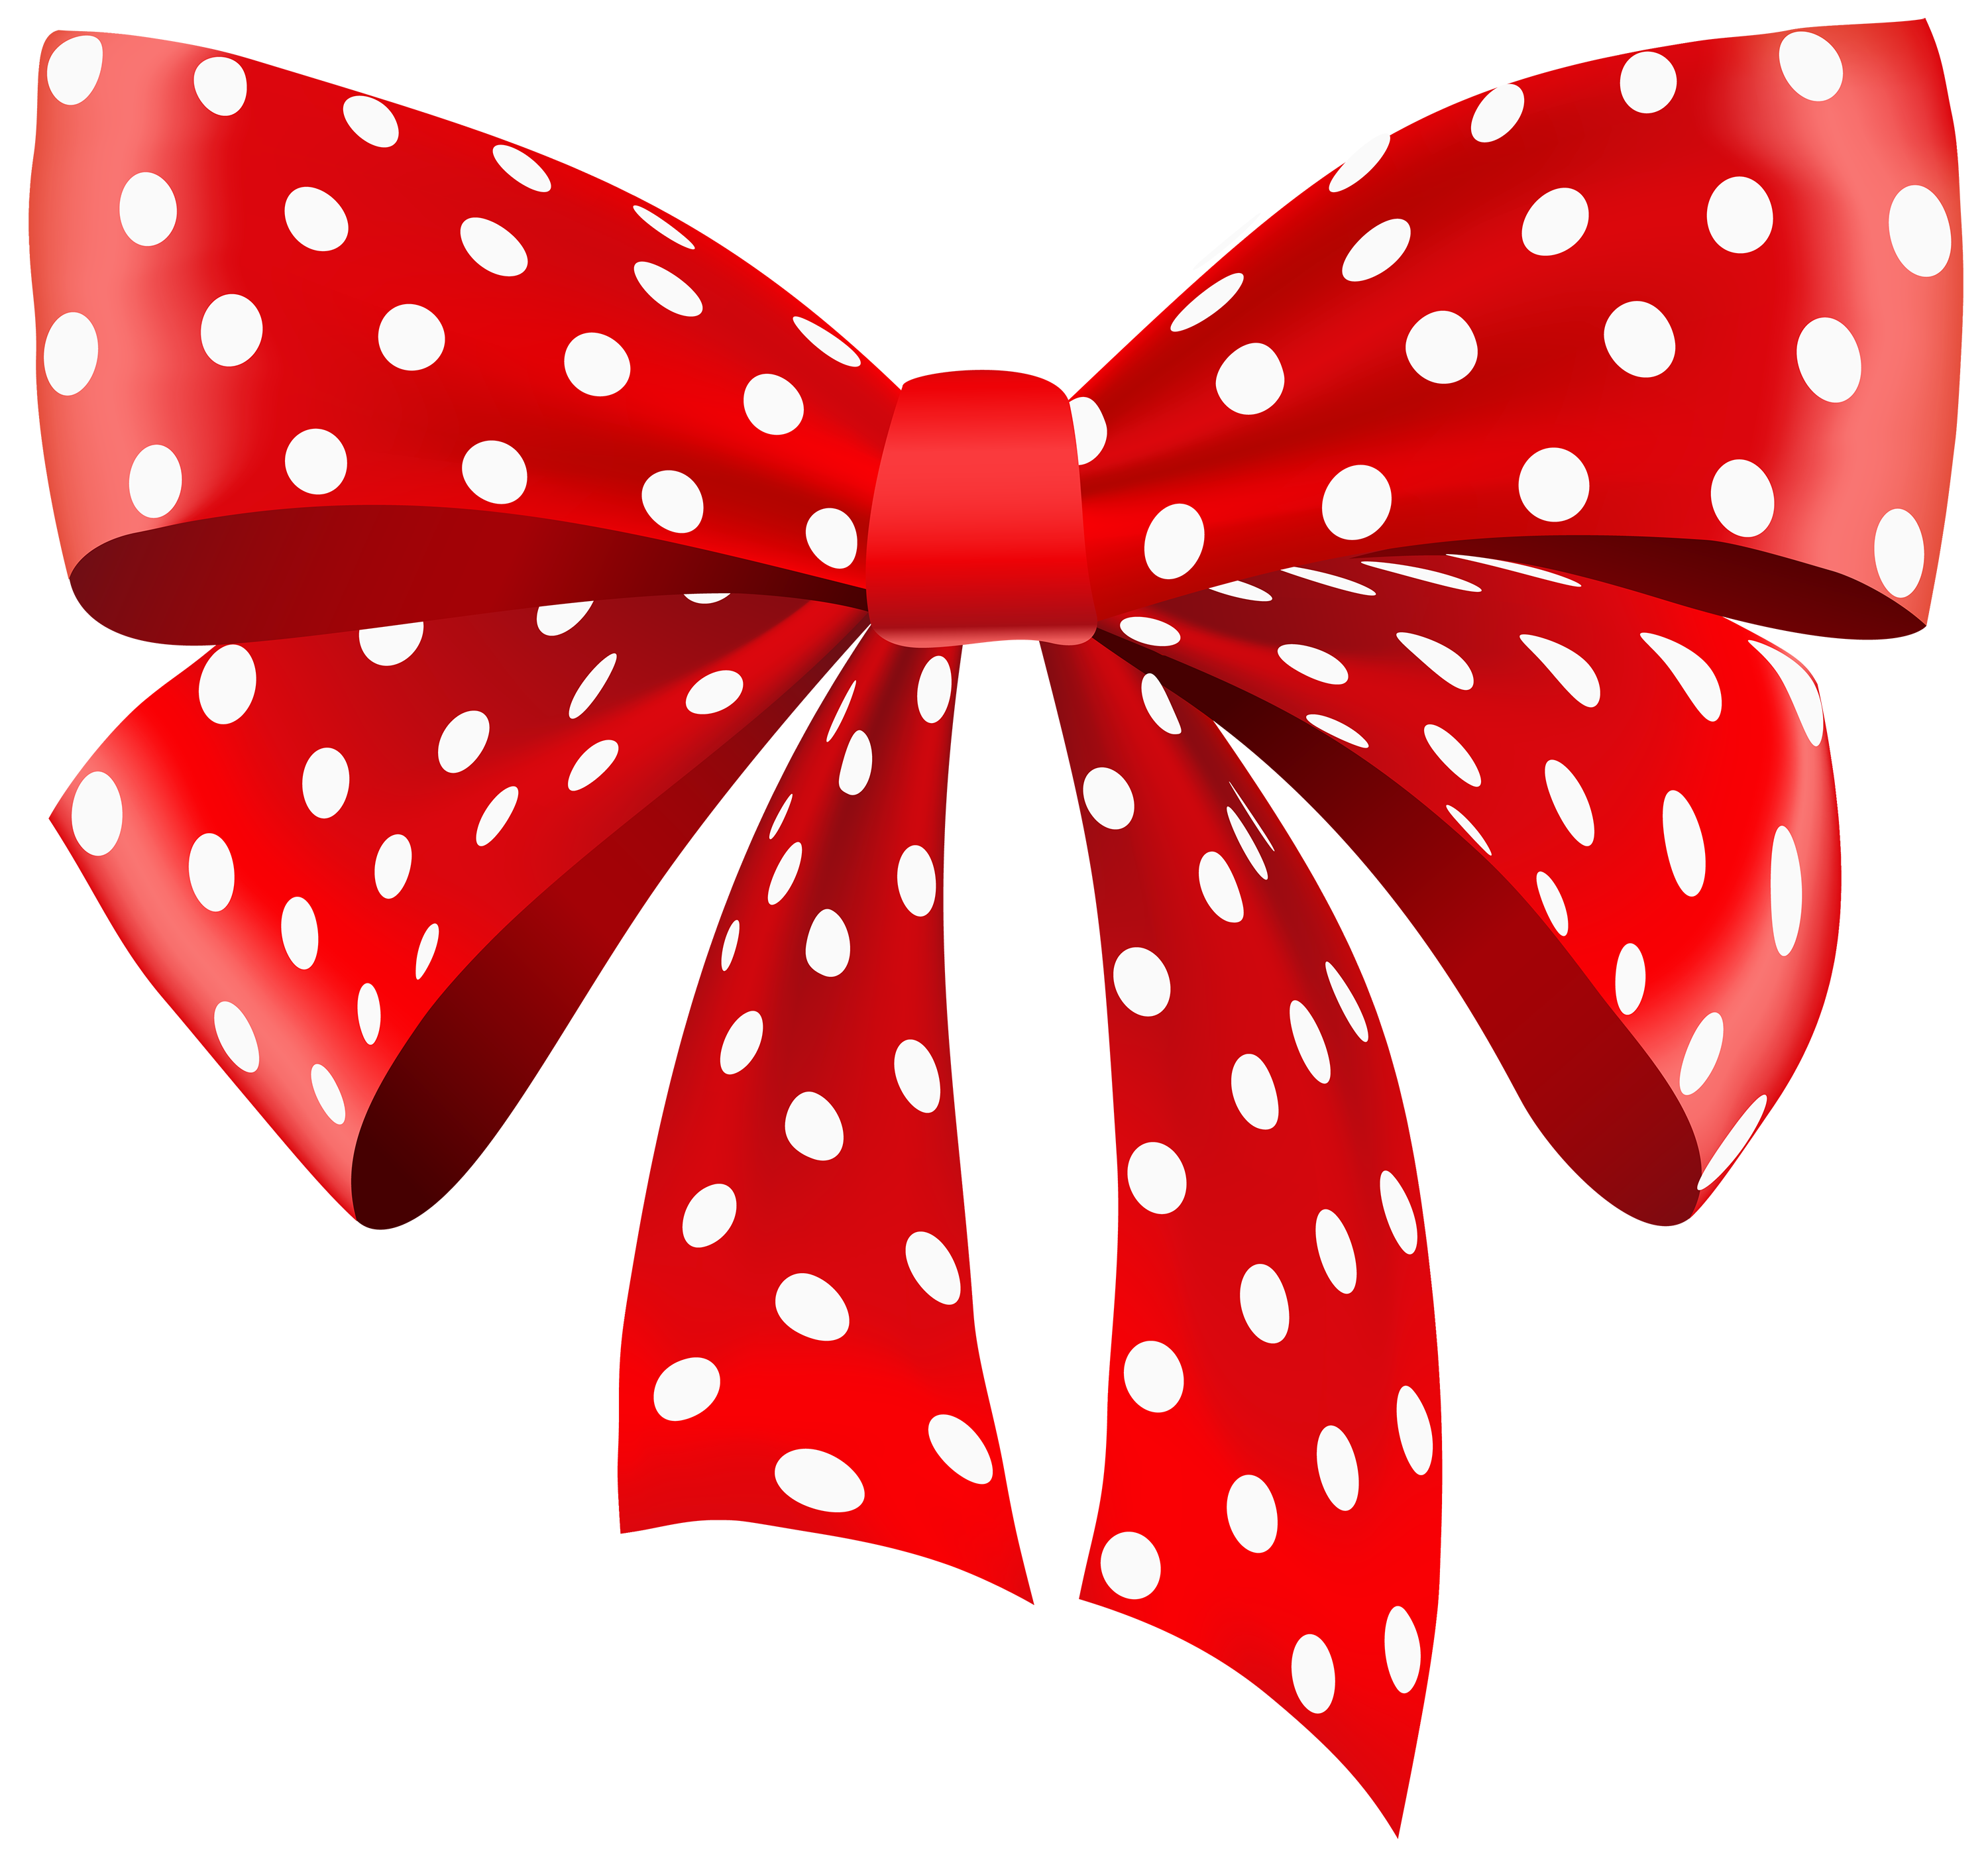 Png images of red polka dots